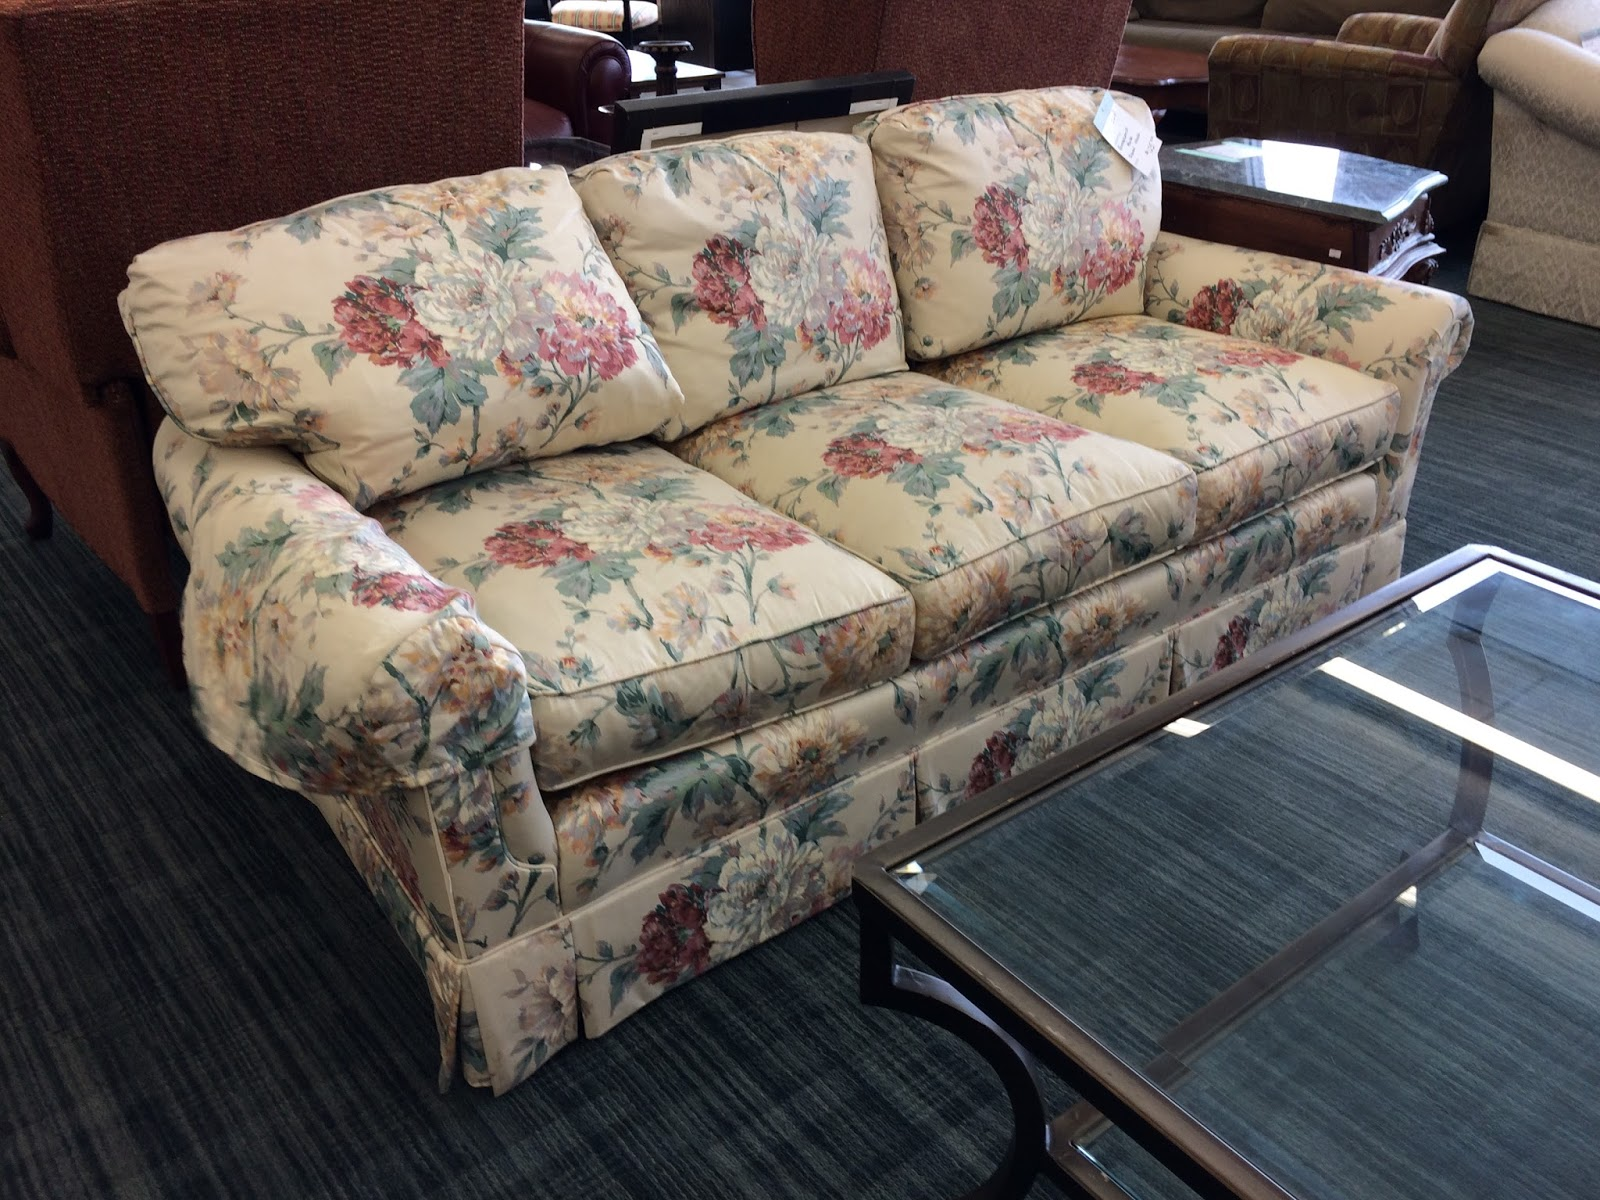 Delicieux Fabulous Pennsylvania House Floral Sofa In Excellent Condition And Priced  $125